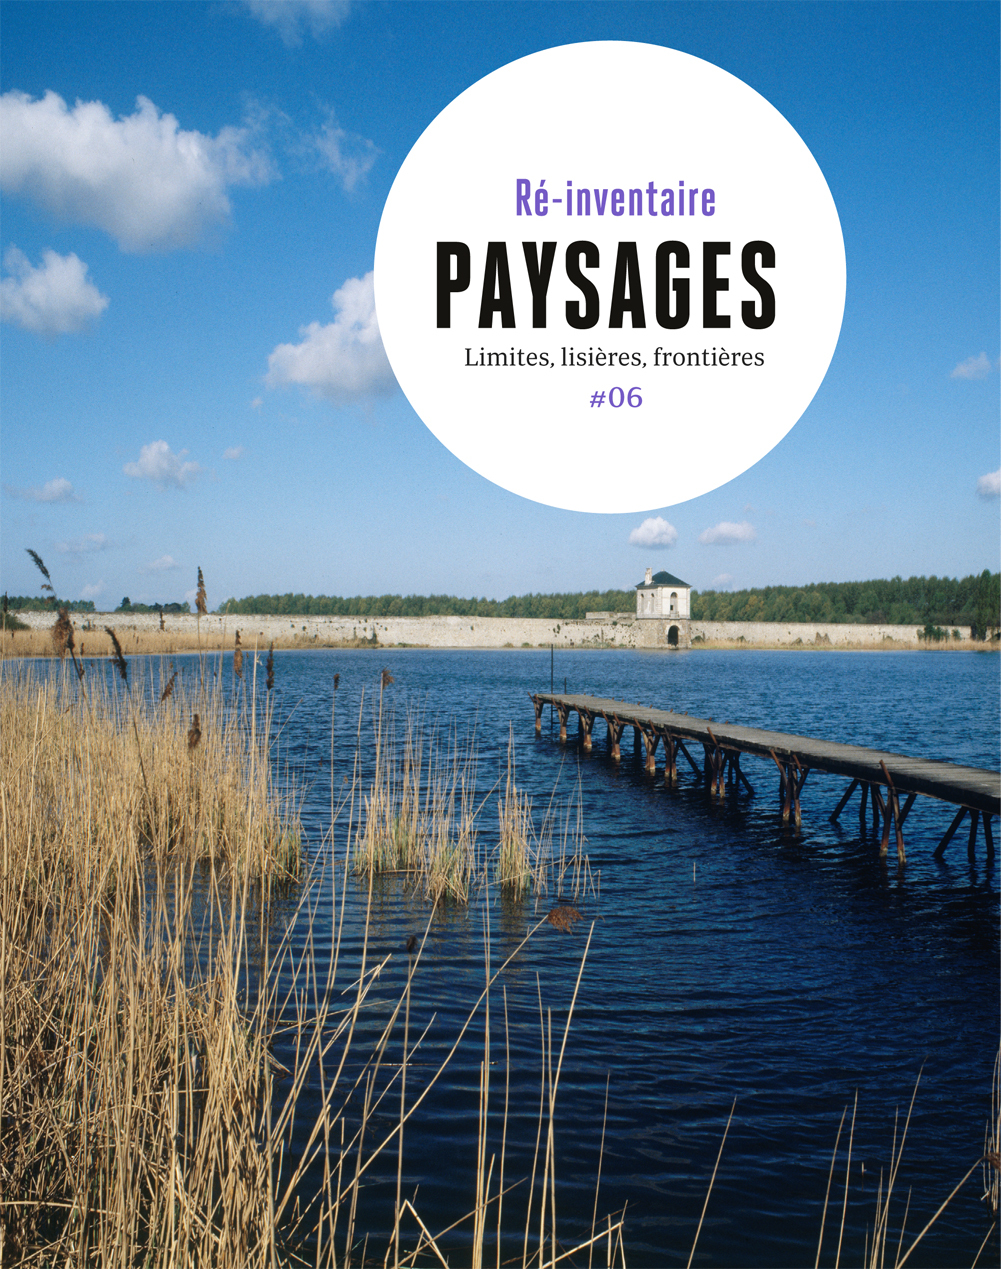 PAYSAGES - LIMITES, LISIERES, FRONTIERES